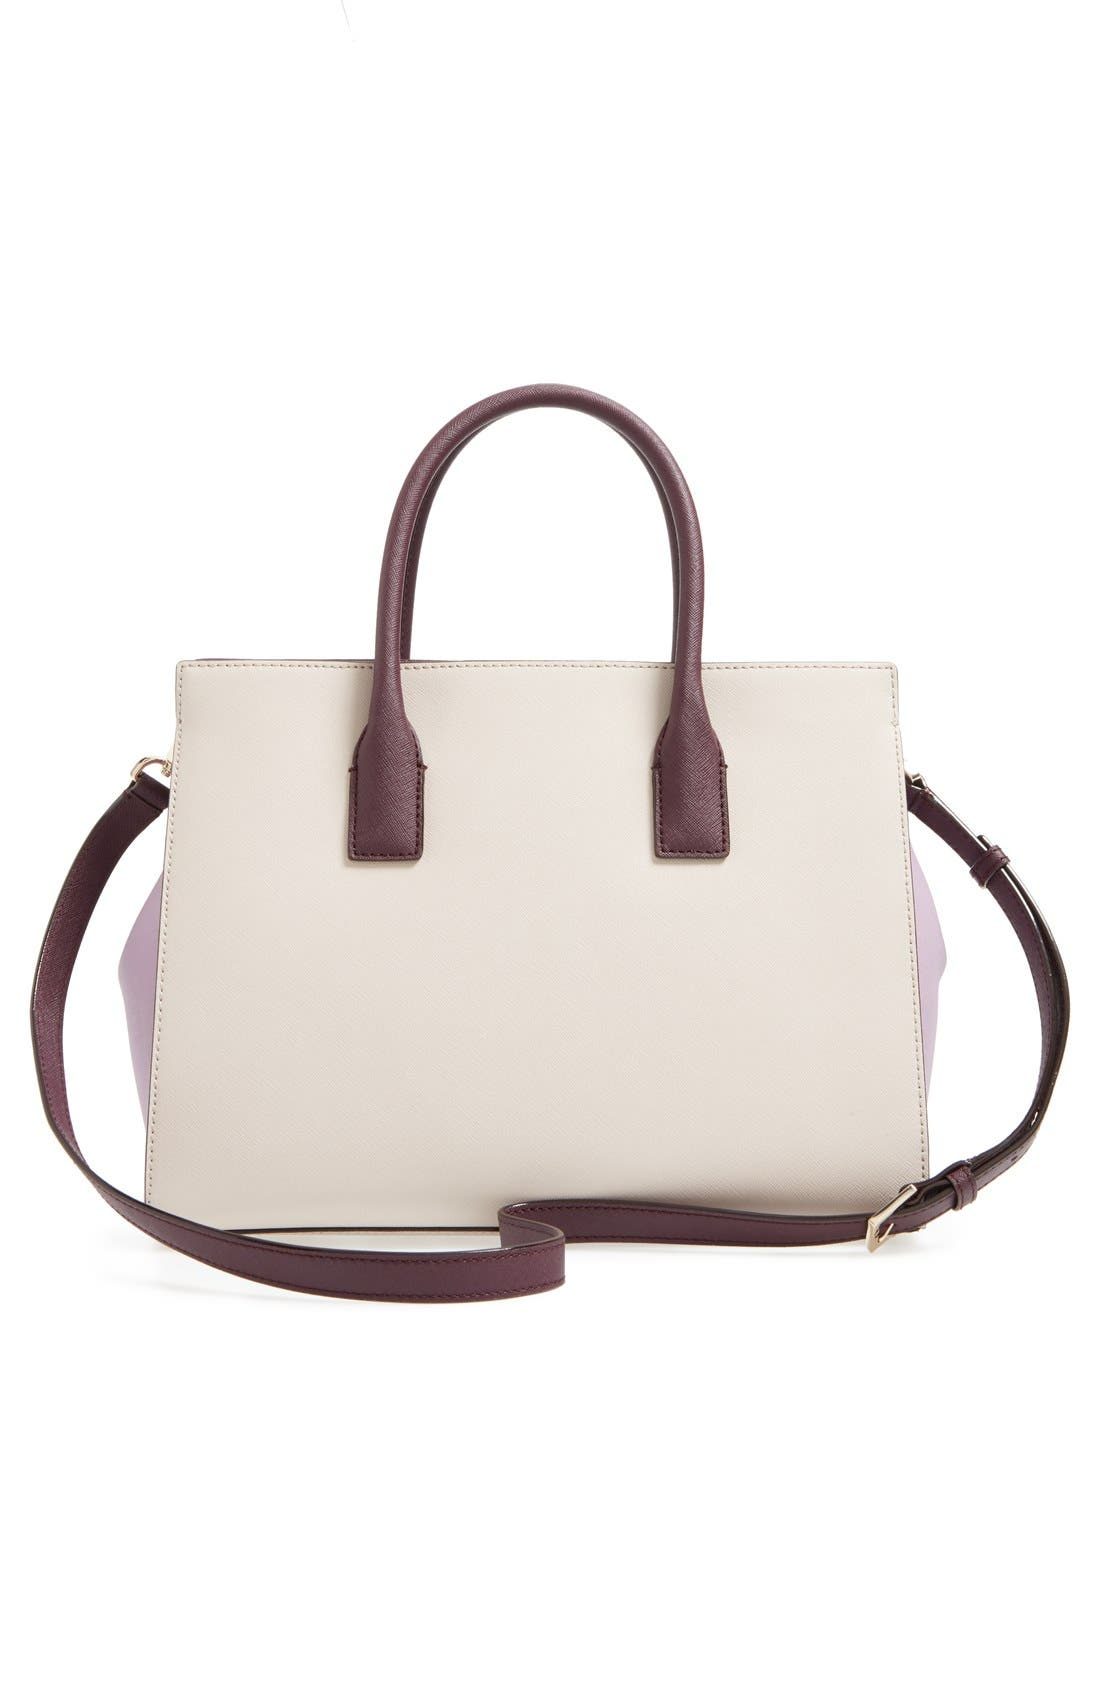 cameron street - candace leather satchel,                             Alternate thumbnail 63, color,